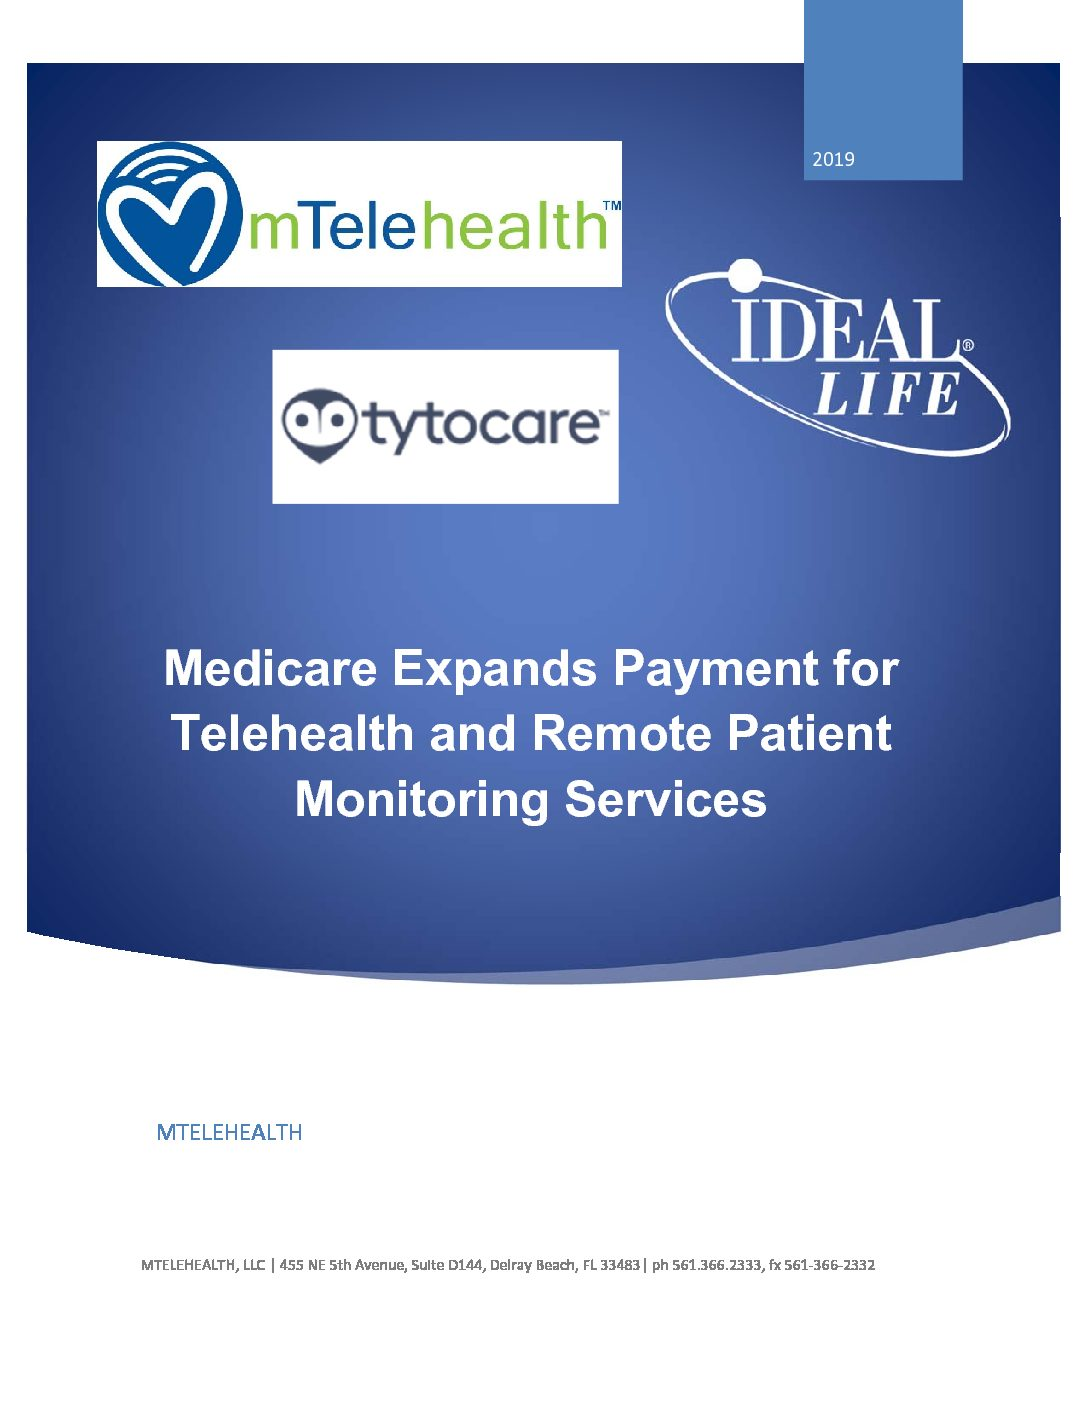 Home Health Monitoring Systems Remote Patient Monitoring Mhealth